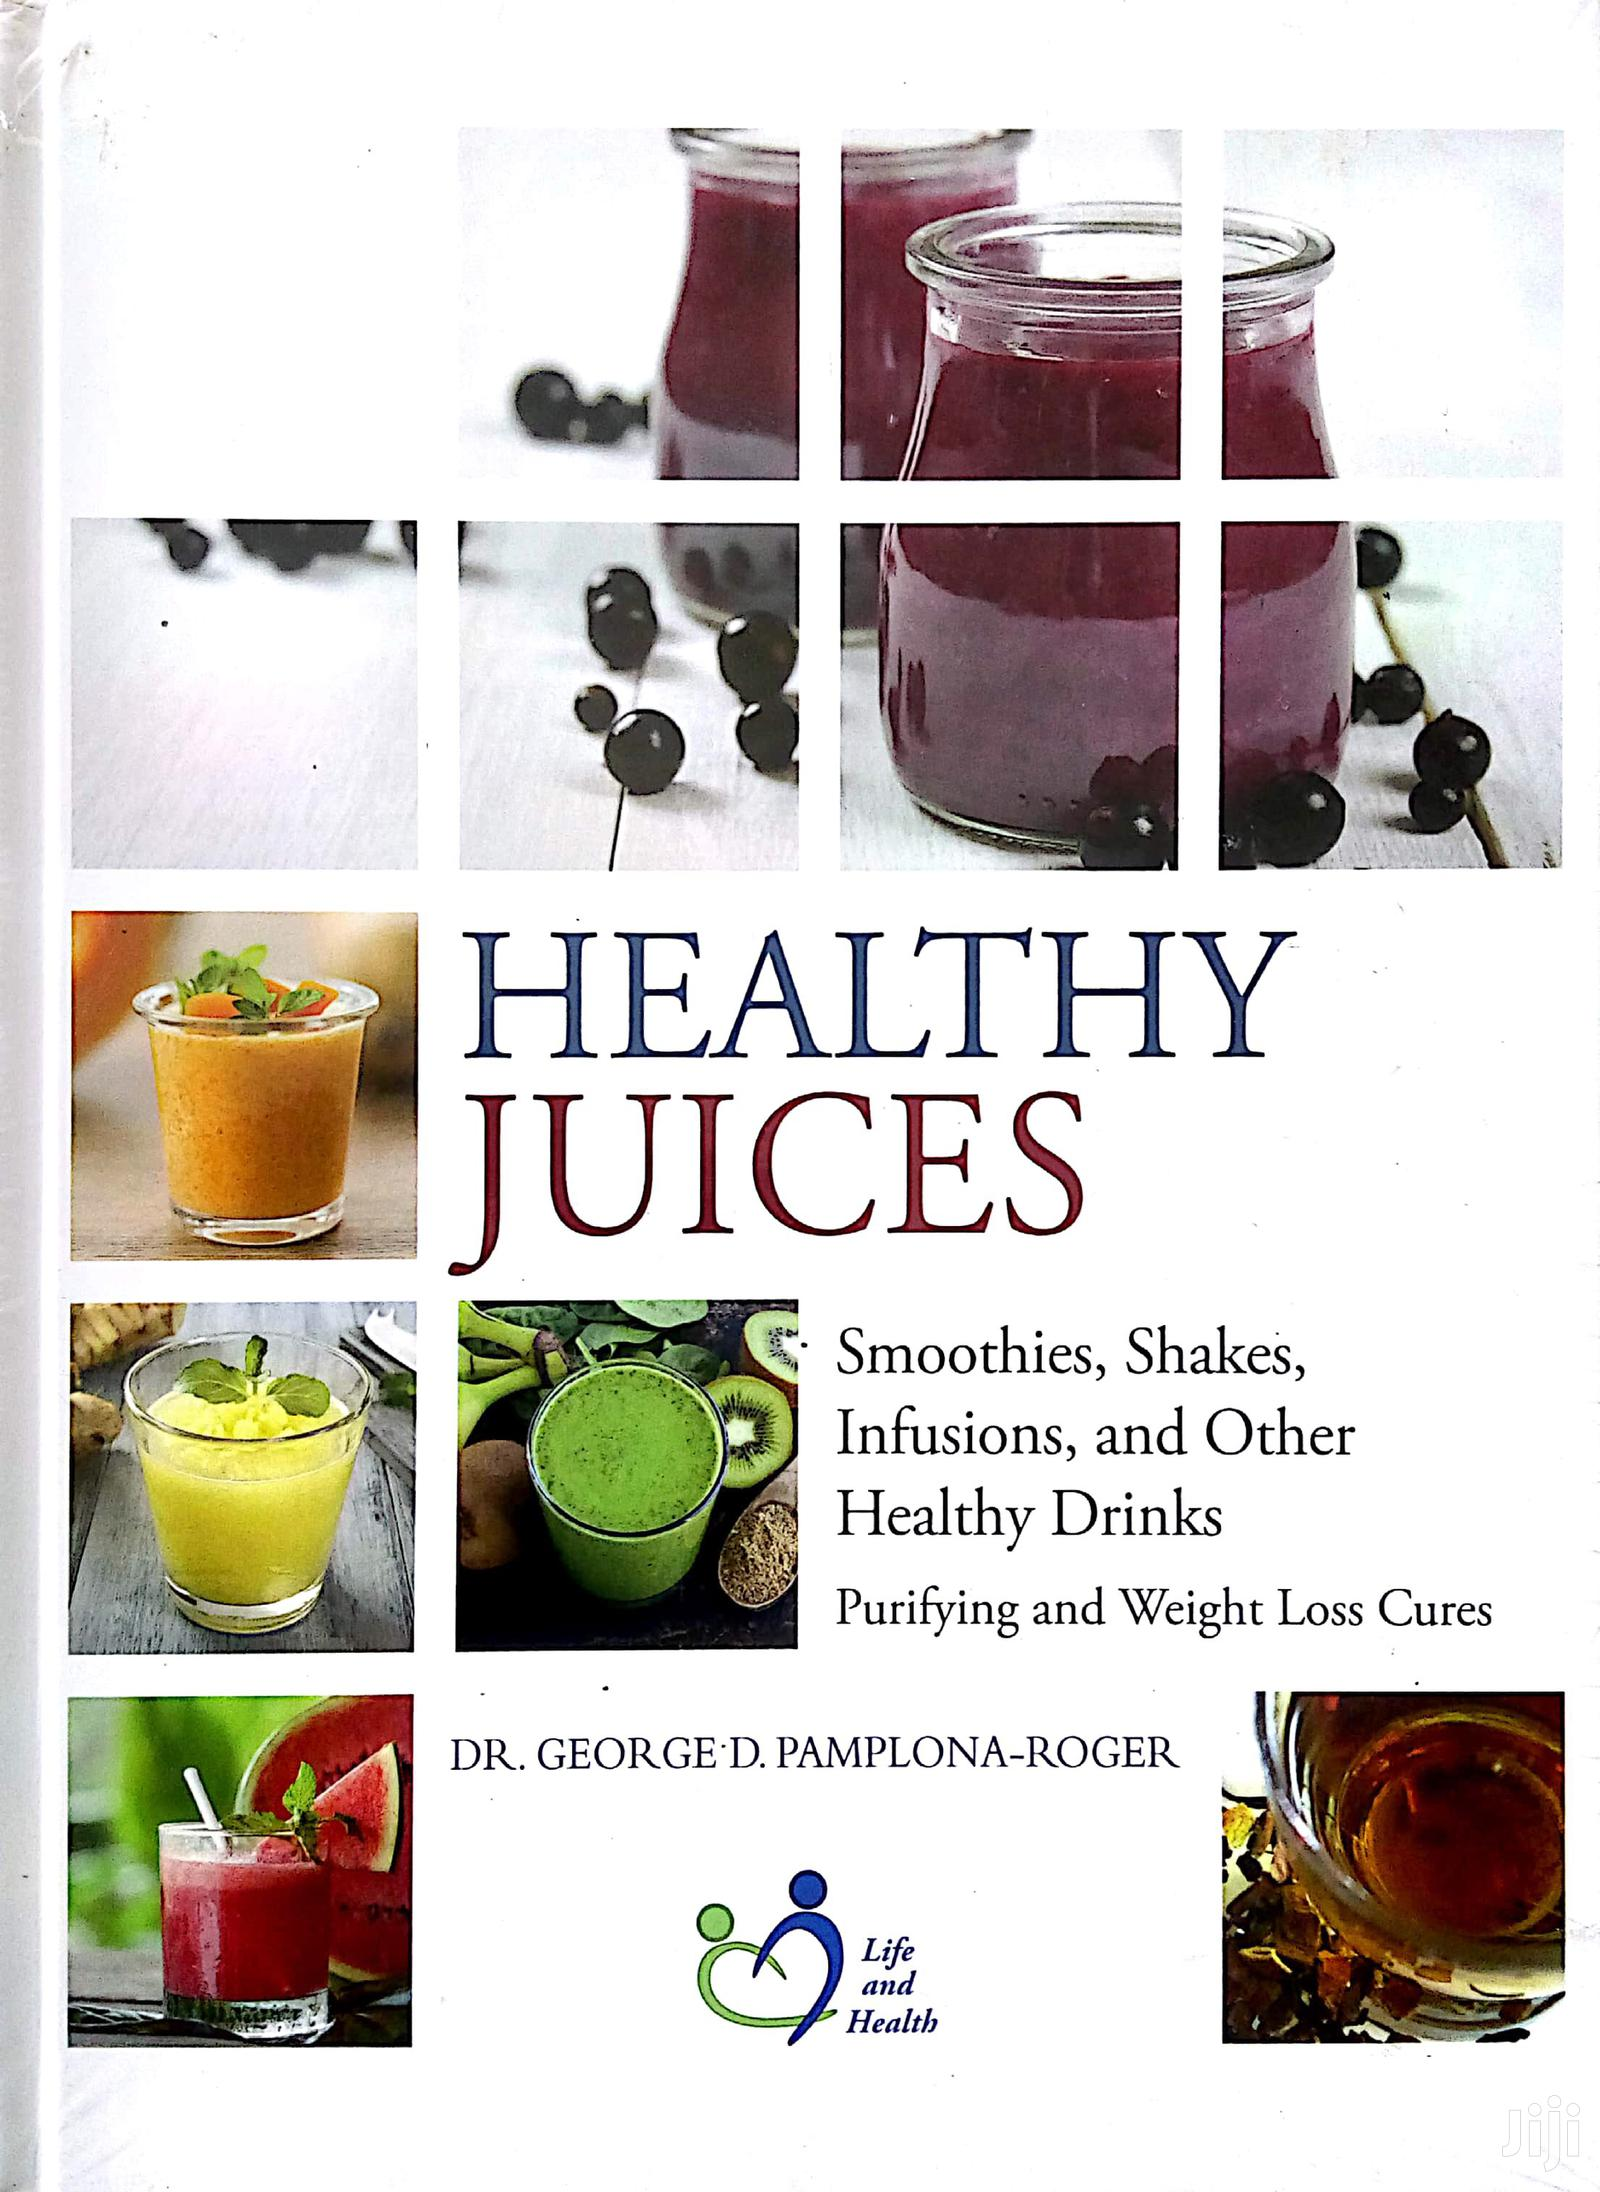 Archive: Healthy Juices